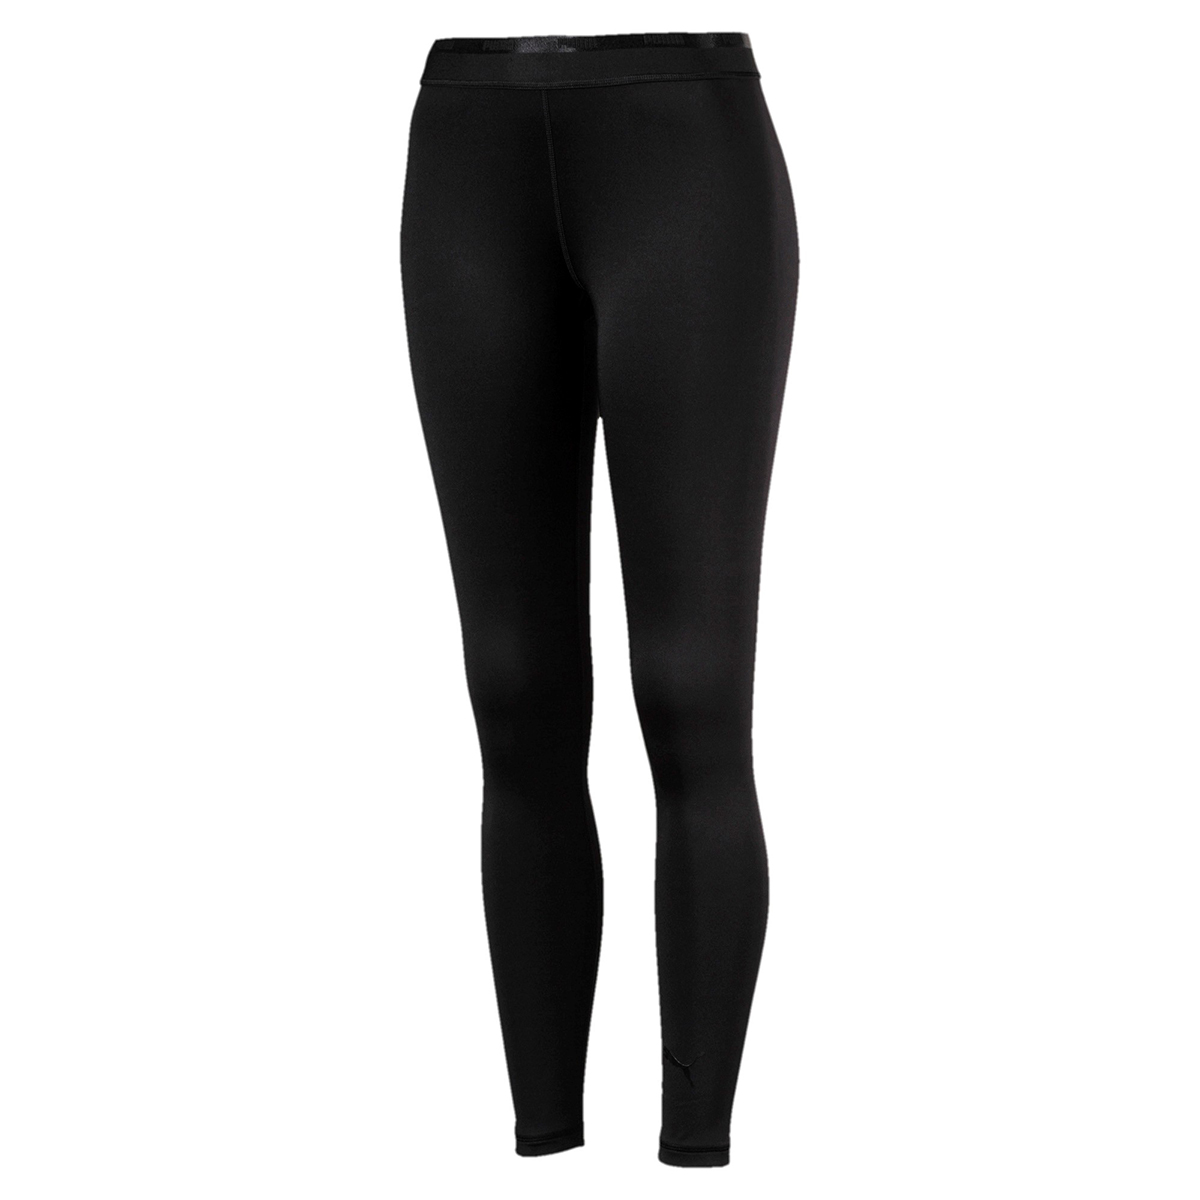 Hosen - PUMA Damen Soft Sports Leggings Pant Hose Pants Fitnesshose schwarz 843682 M  - Onlineshop Sneakerprofi